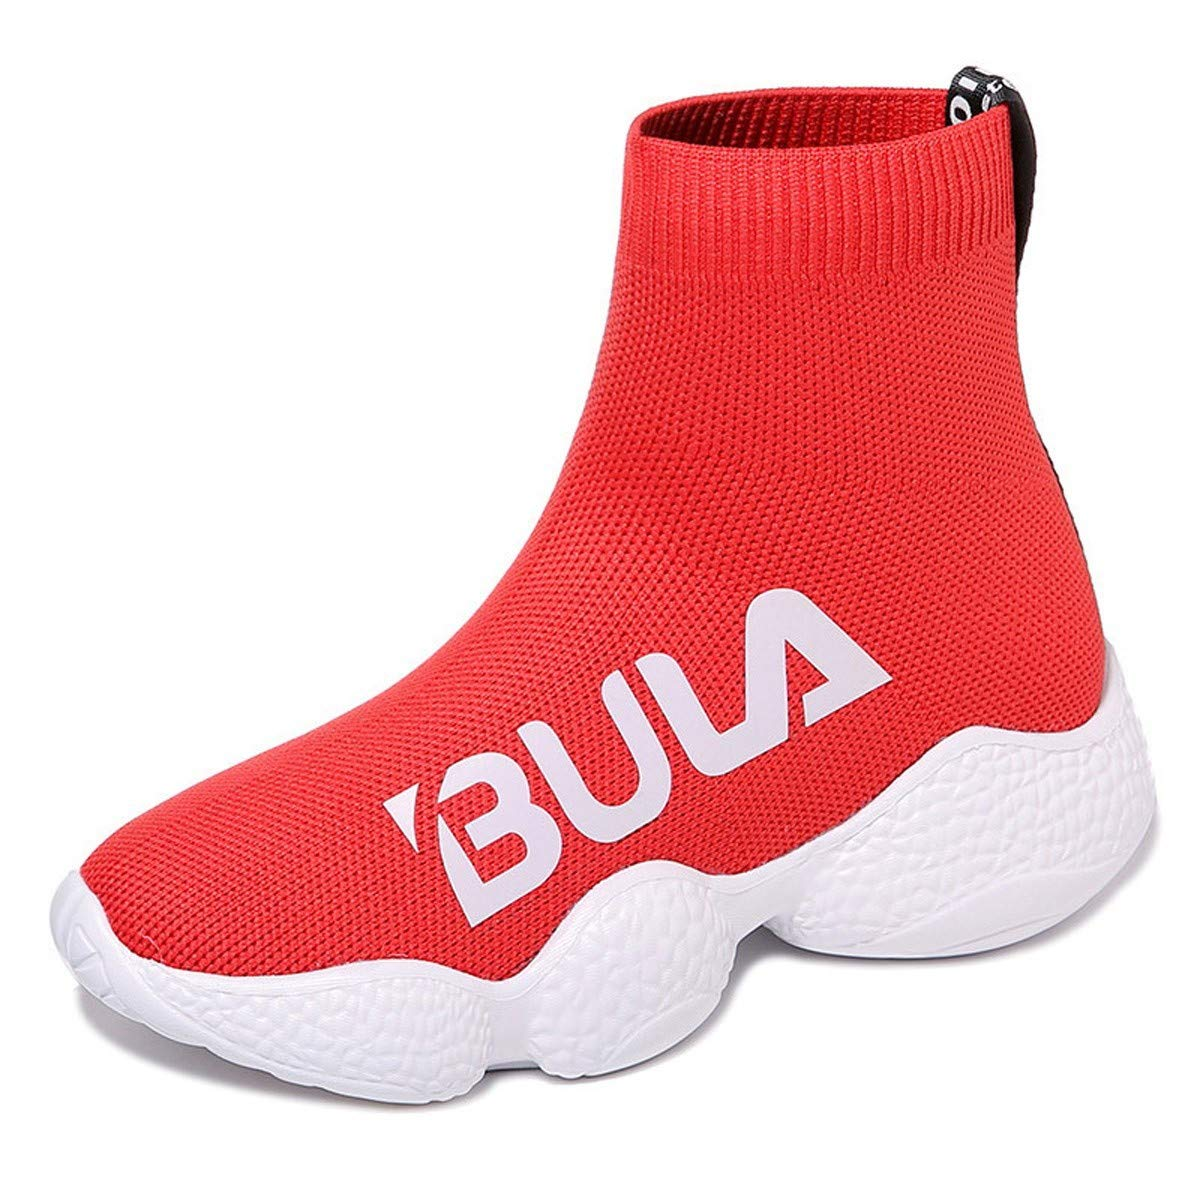 SFSYDDY Chaussures Populaires Wohommes Sports Chaussures Chaussettes Chaussures Baitao édition Coréenne Thirty-six gules